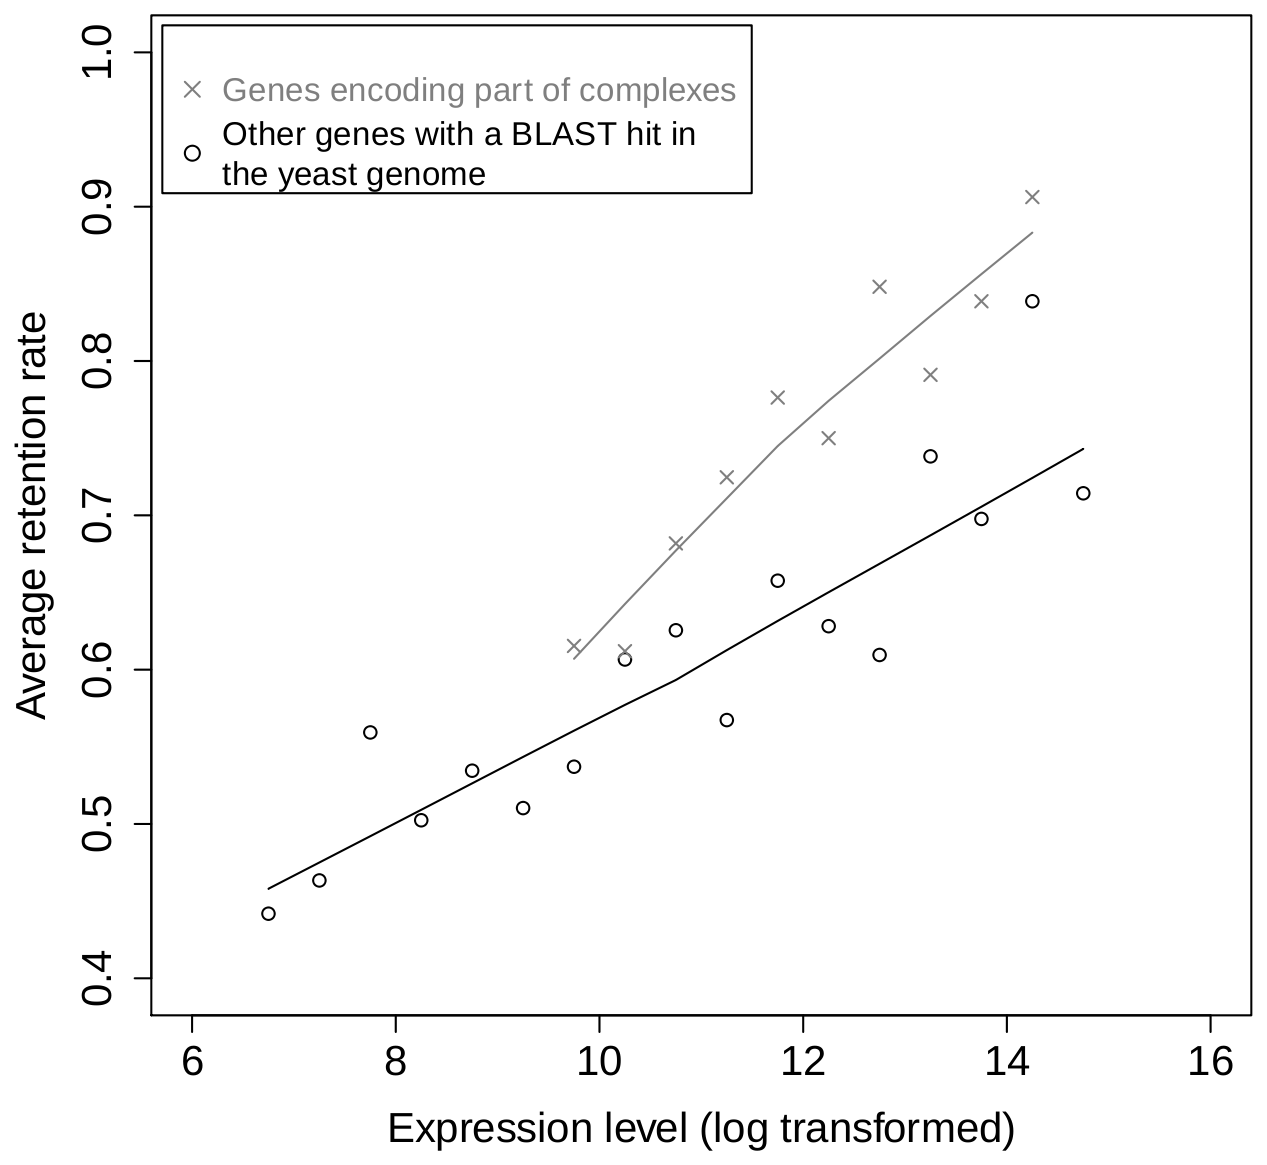 Relationship between gene expression and retention for subunits of protein complexes and for other genes.